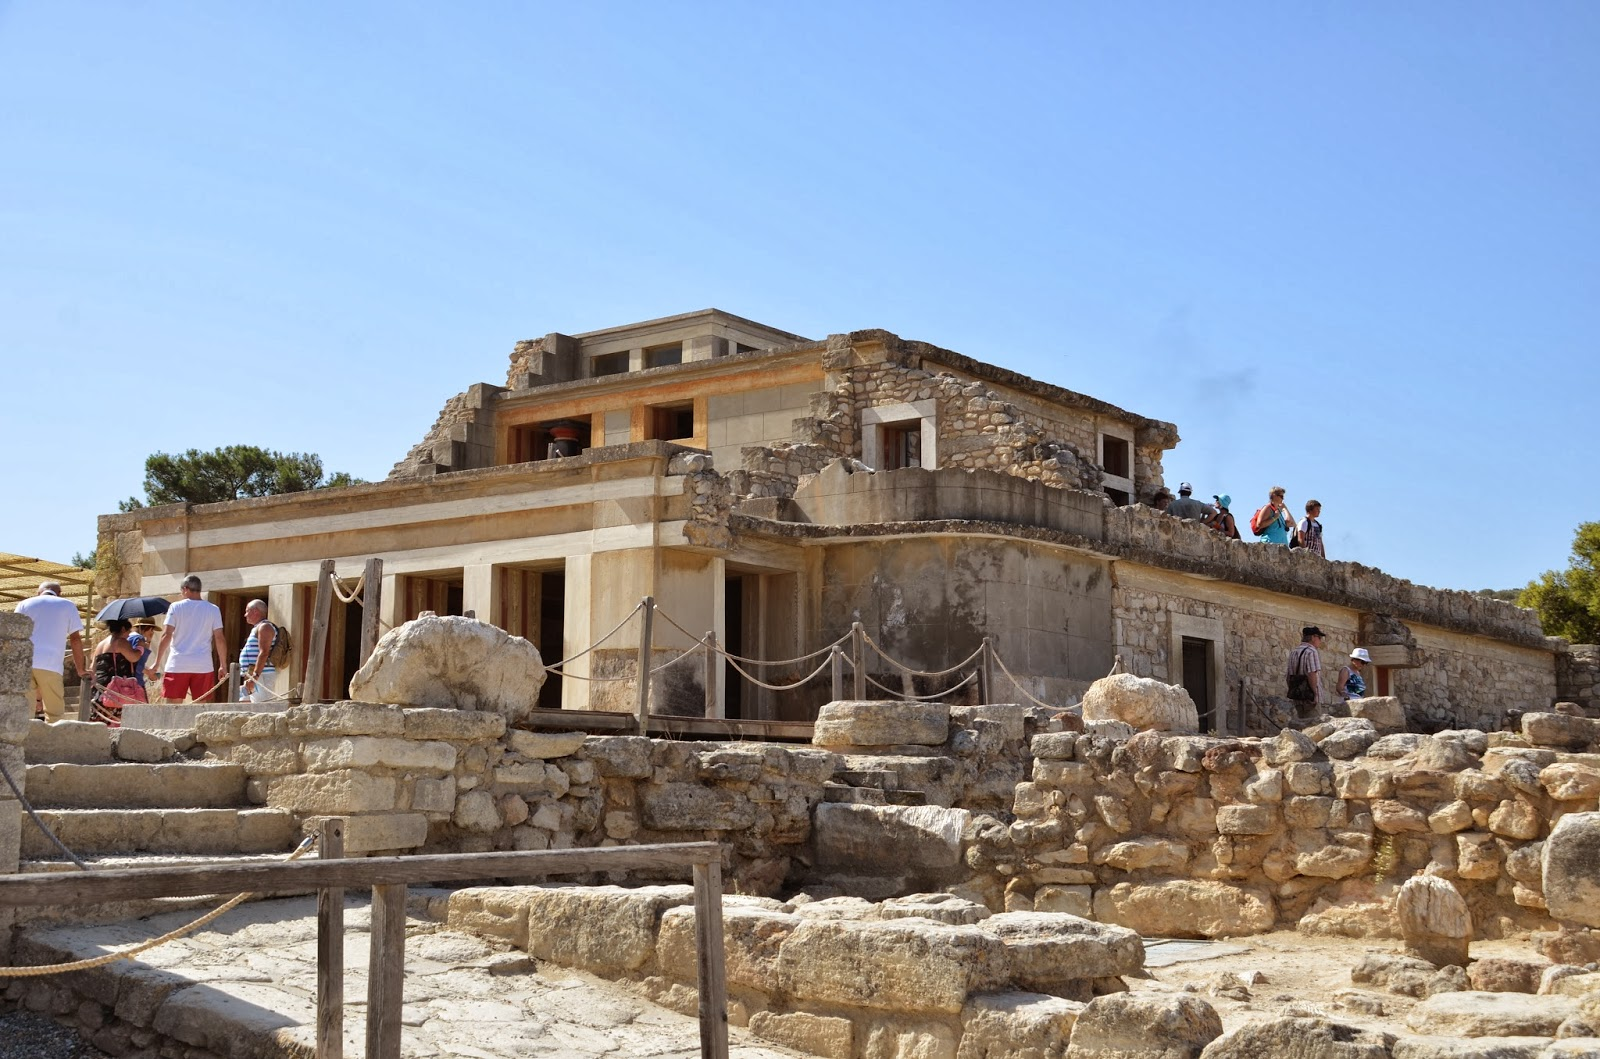 THE PALACE OF KNOSSOS Holiday and Travel Europe